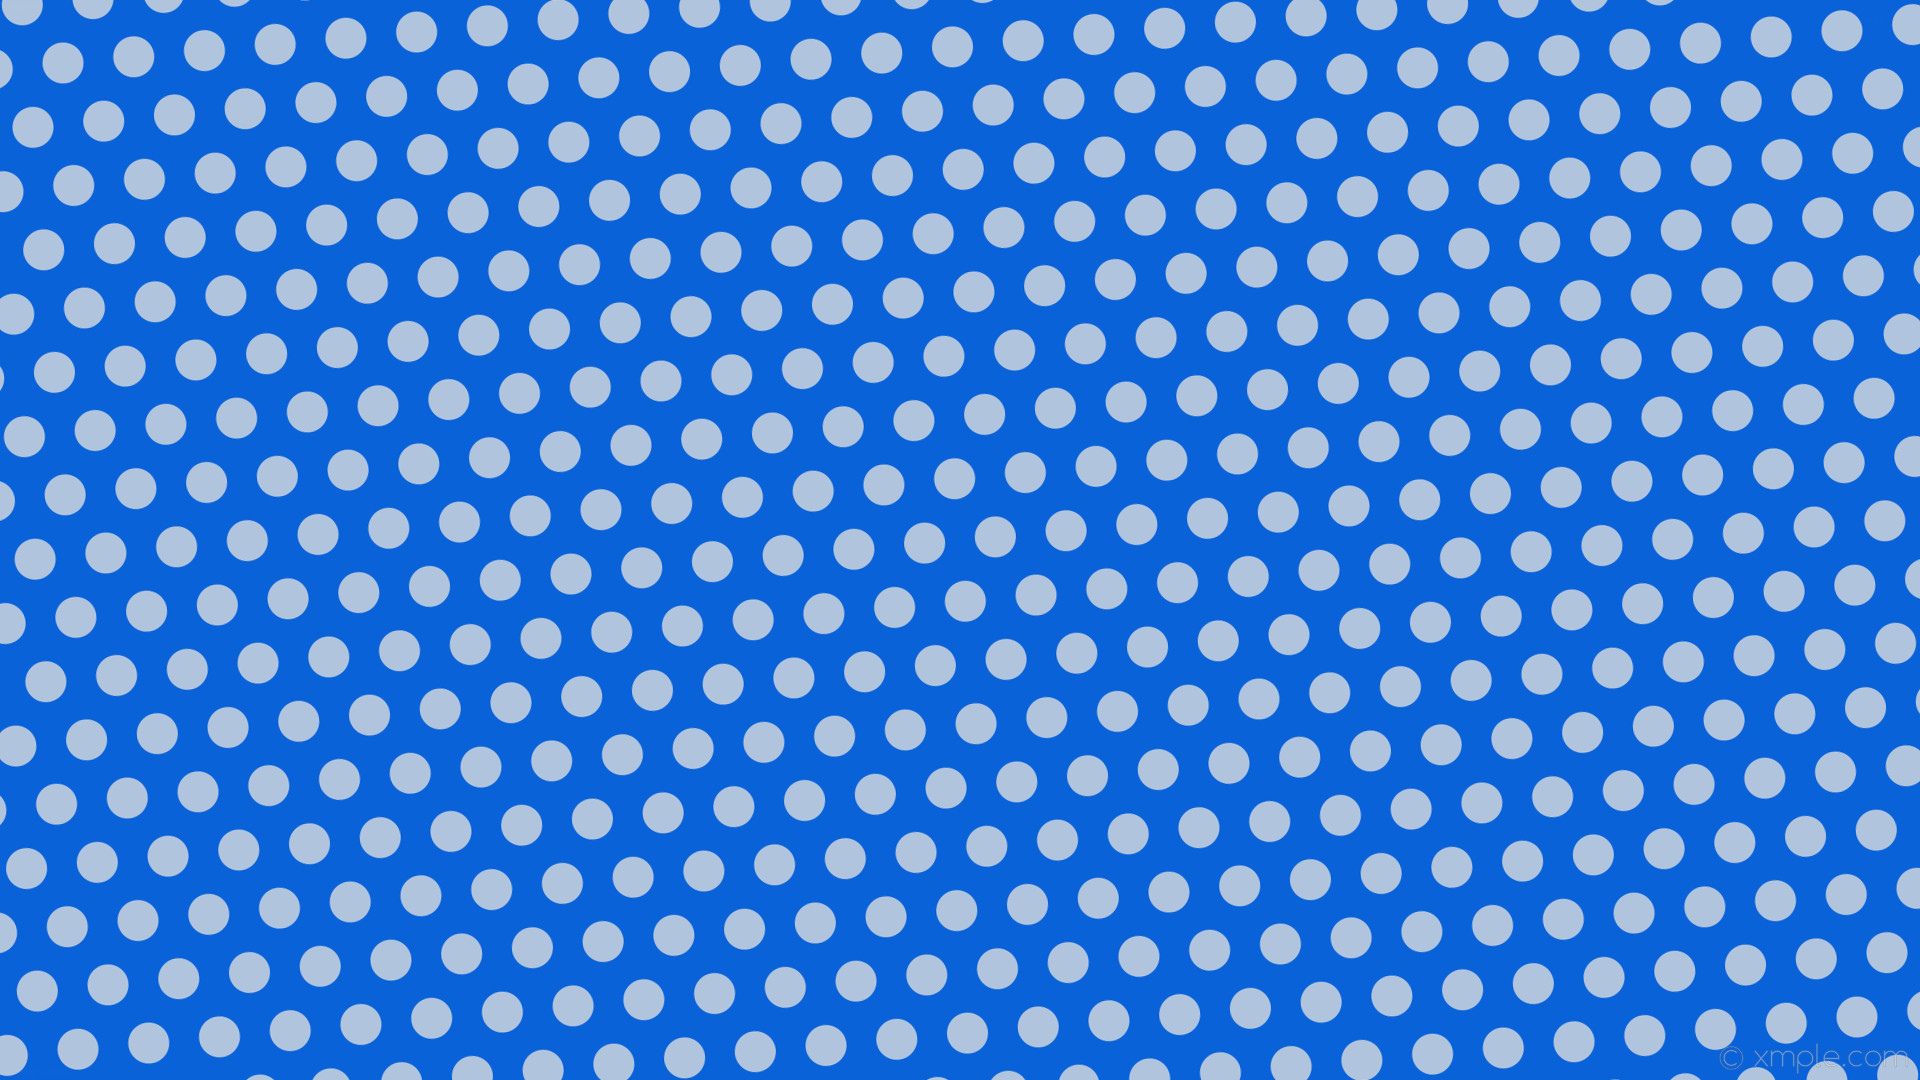 wallpaper blue polka dots azure hexagon light steel blue #0a62d9 #b0c4de  diagonal 5°